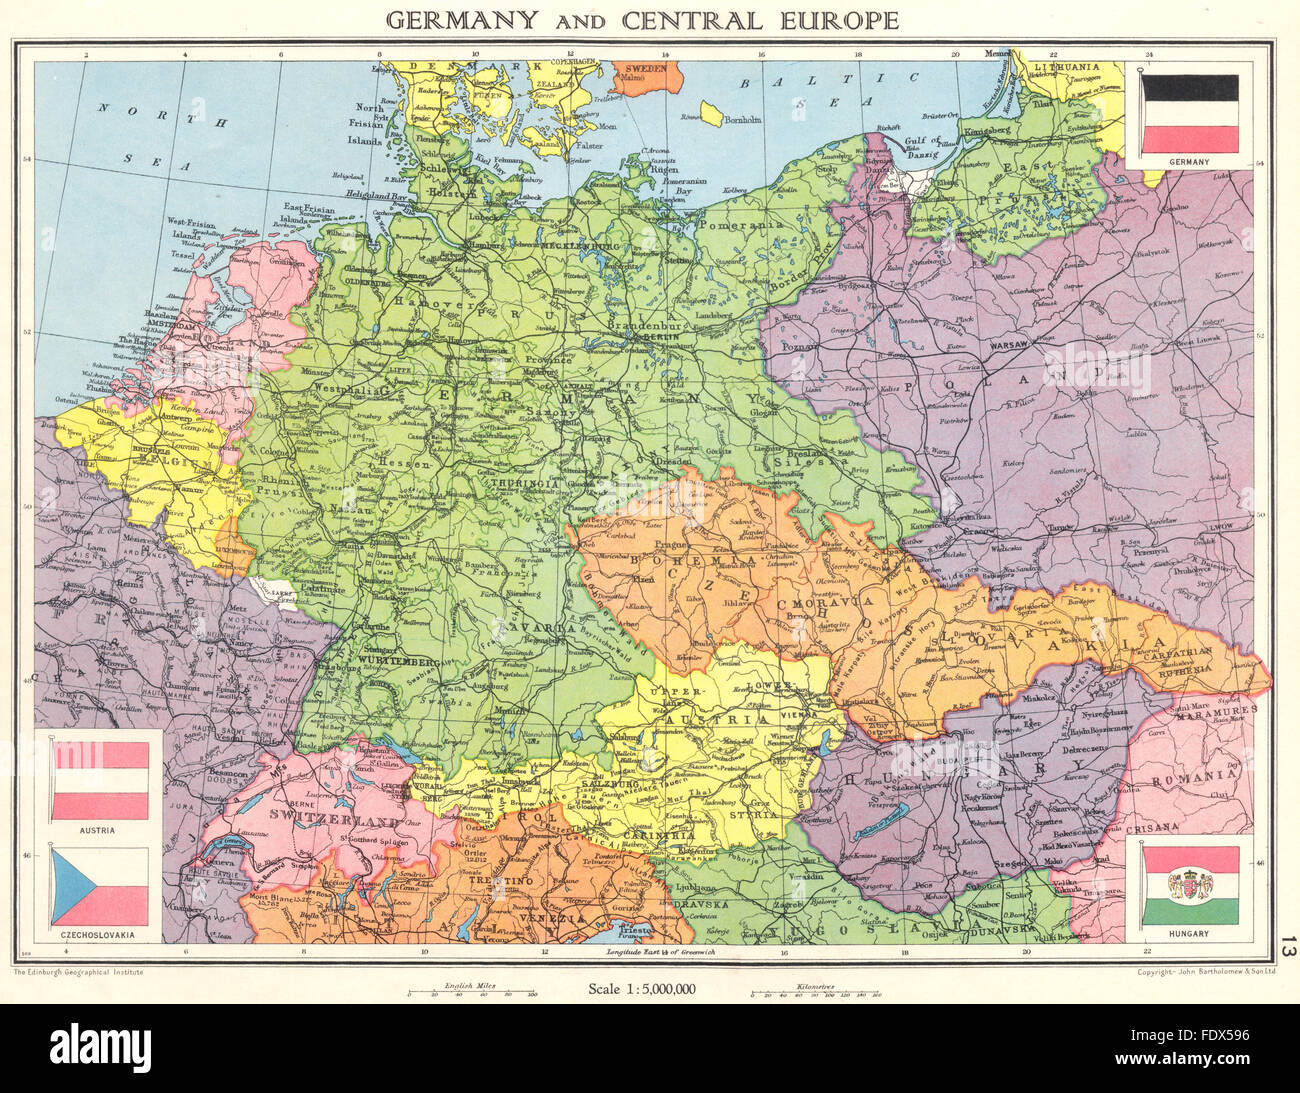 Germany central europe shortly before world war 2 saarland germany central europe shortly before world war 2 saarland 1938 old map gumiabroncs Choice Image